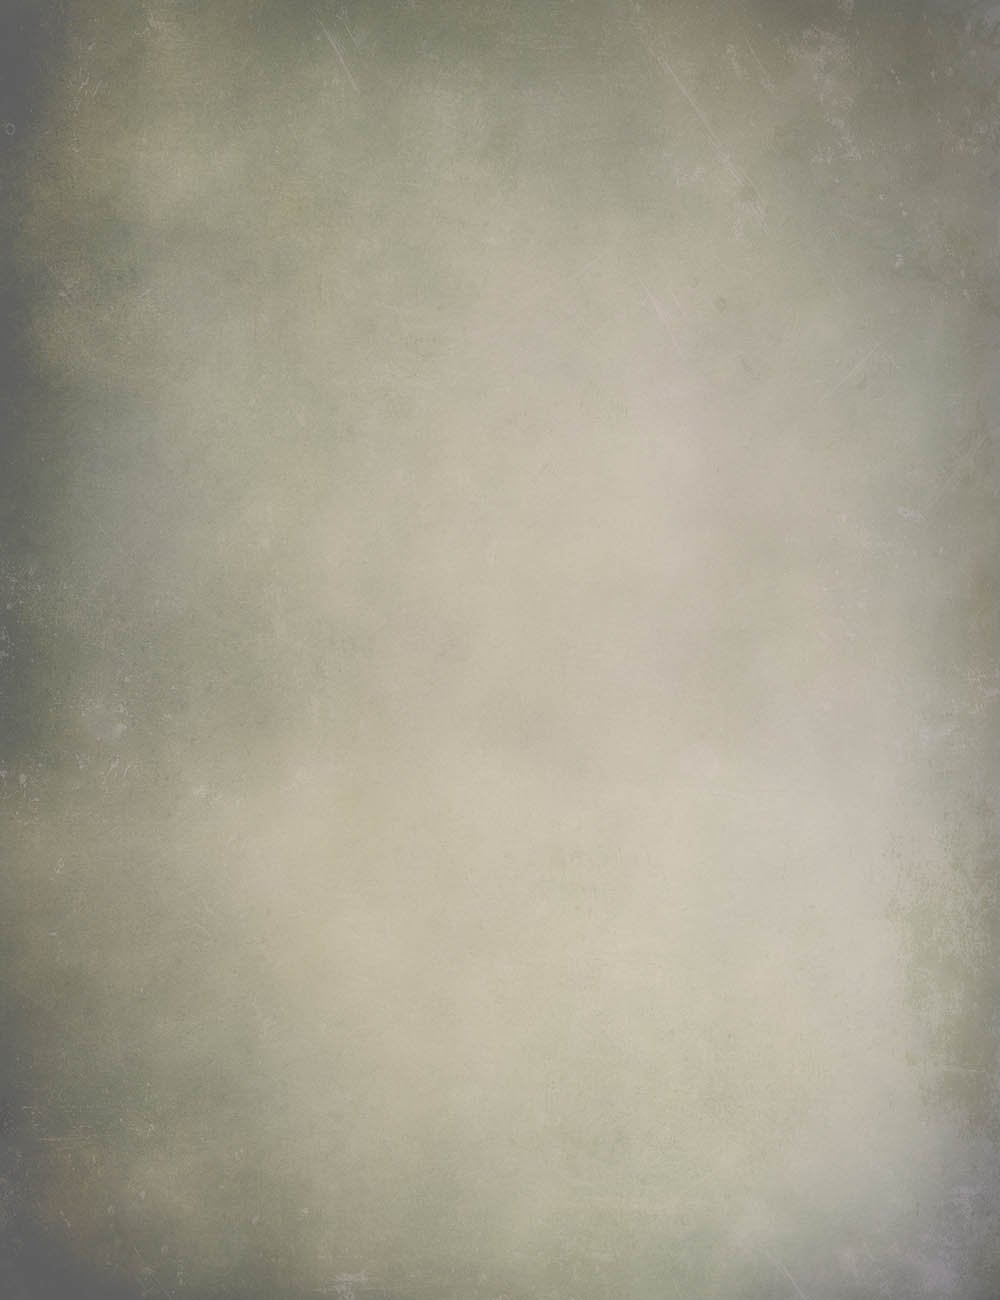 Abstract Pale Ocre Color Printed Old Master Wall For Photography Backdrop - Shop Backdrop